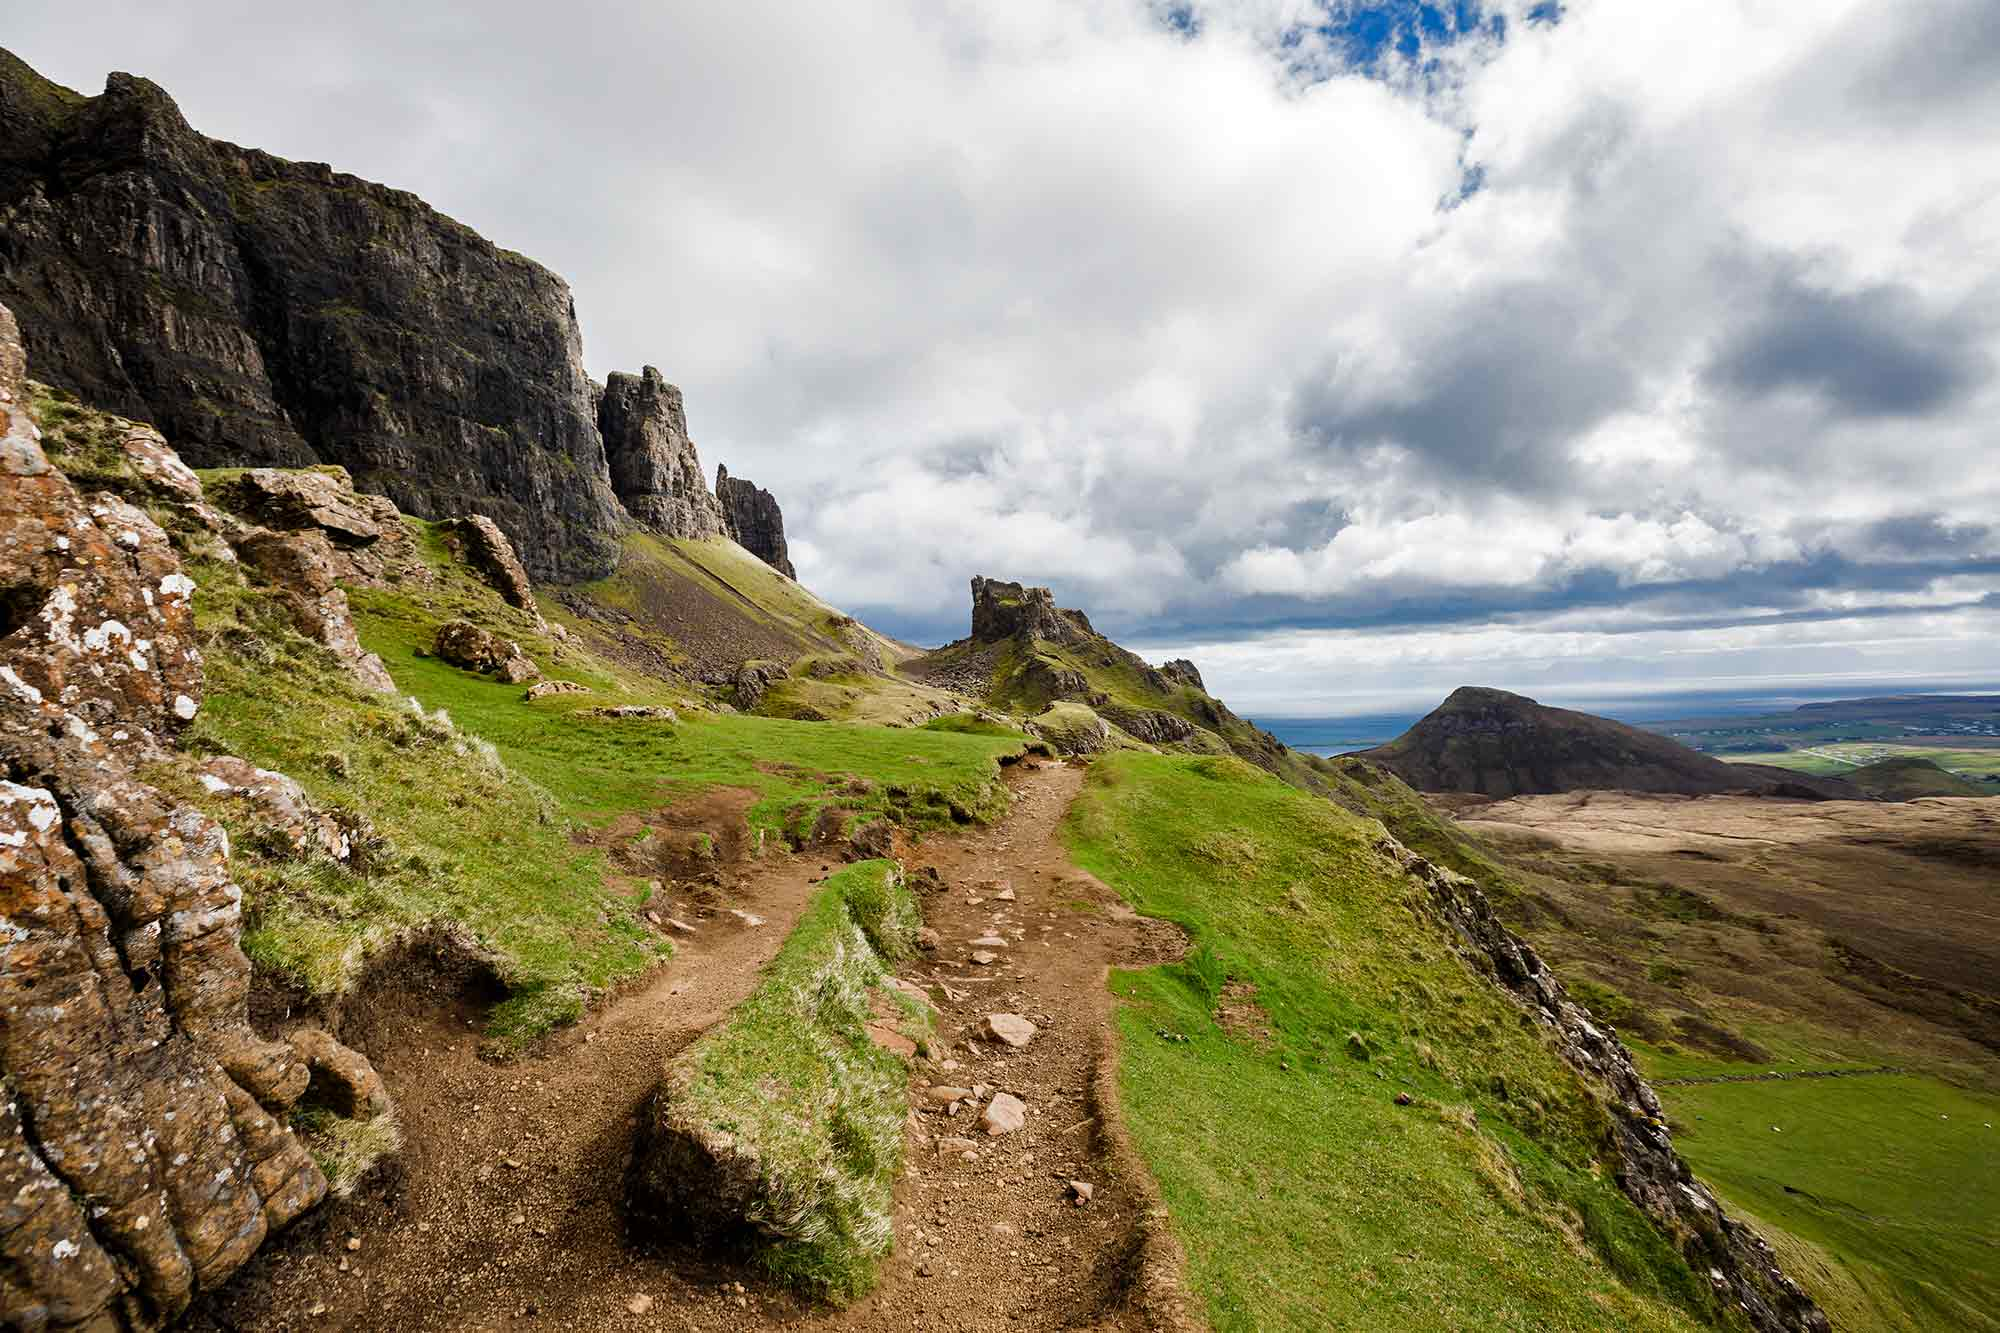 The landscape while hiking along the Quiraing. © ULLI MAIER & NISA MAIER